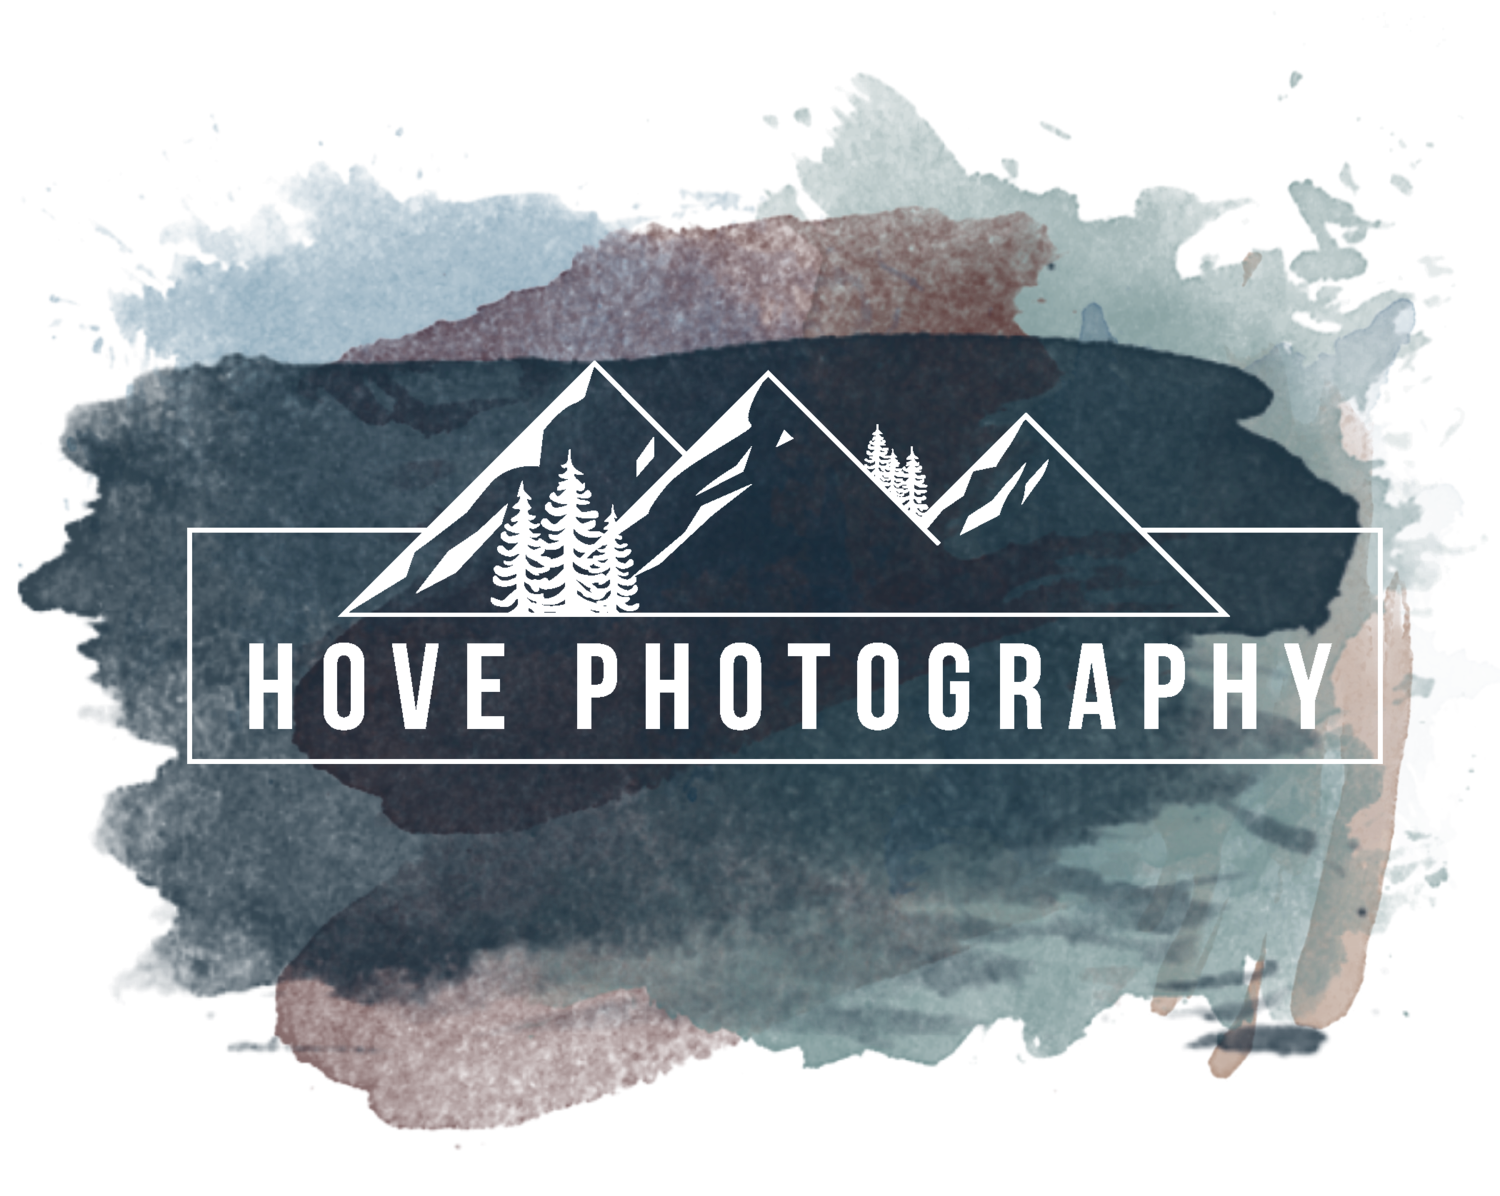 Hove Photography LLC